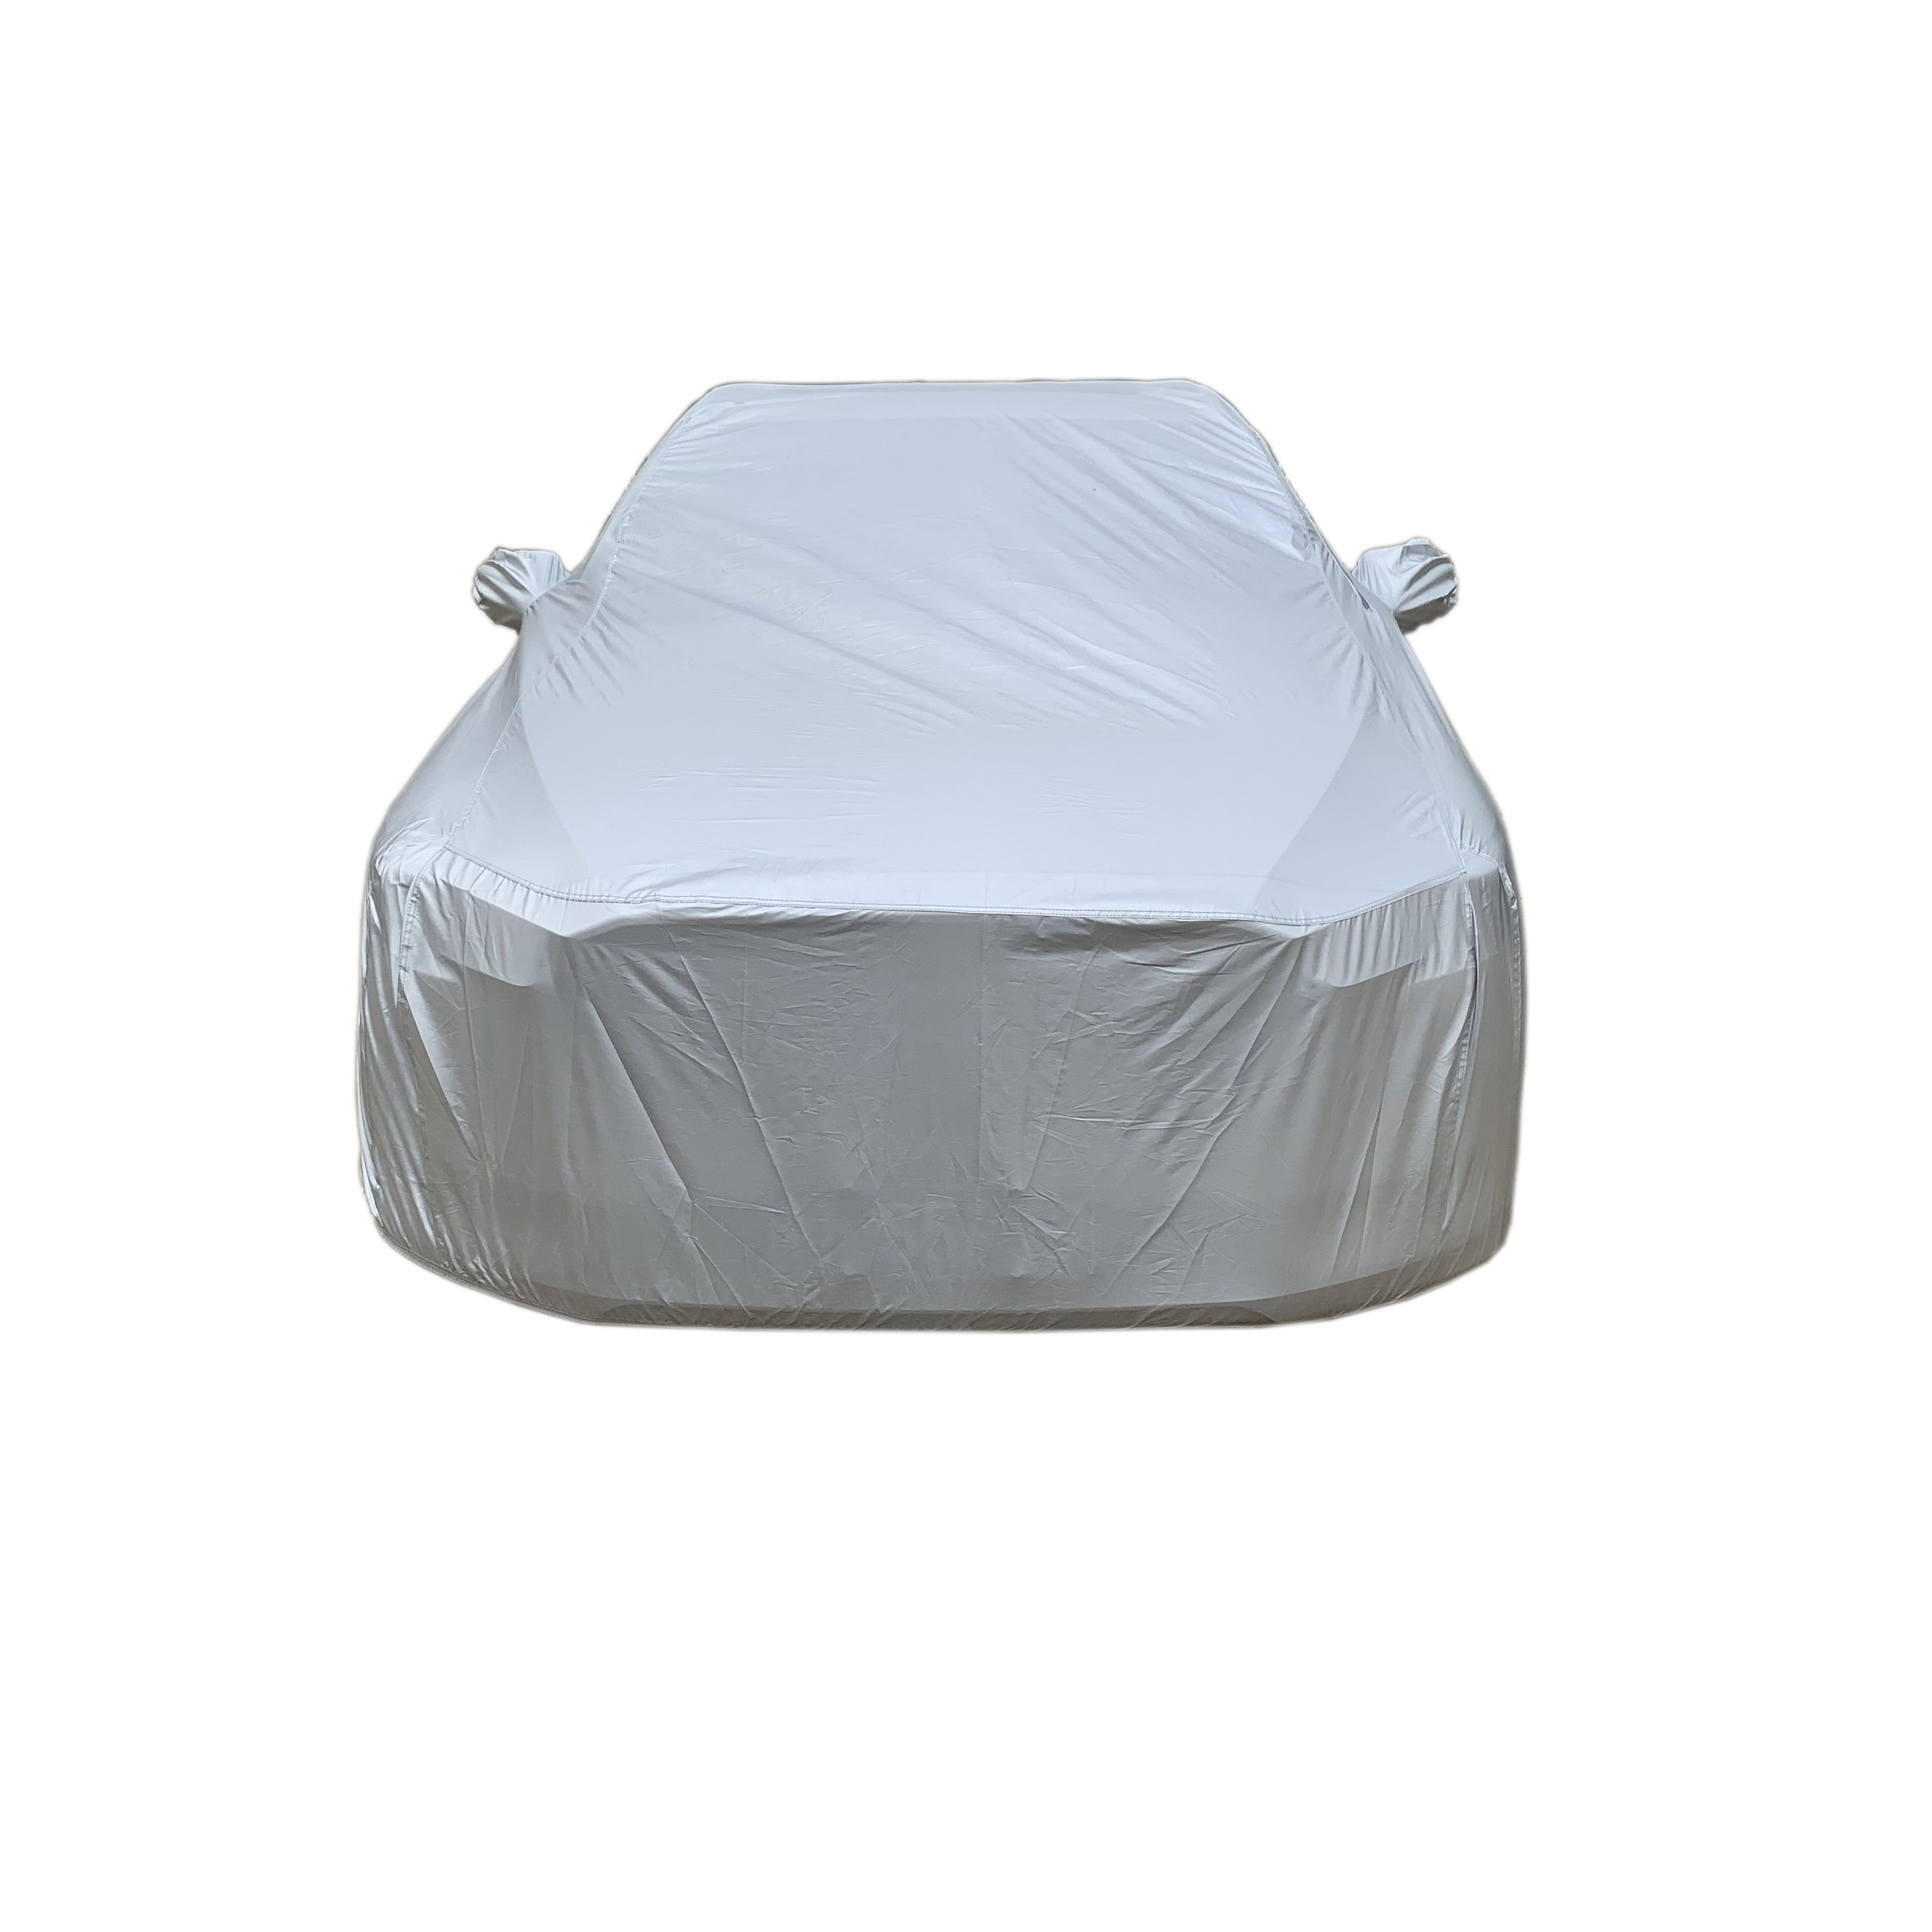 190T silver car cover